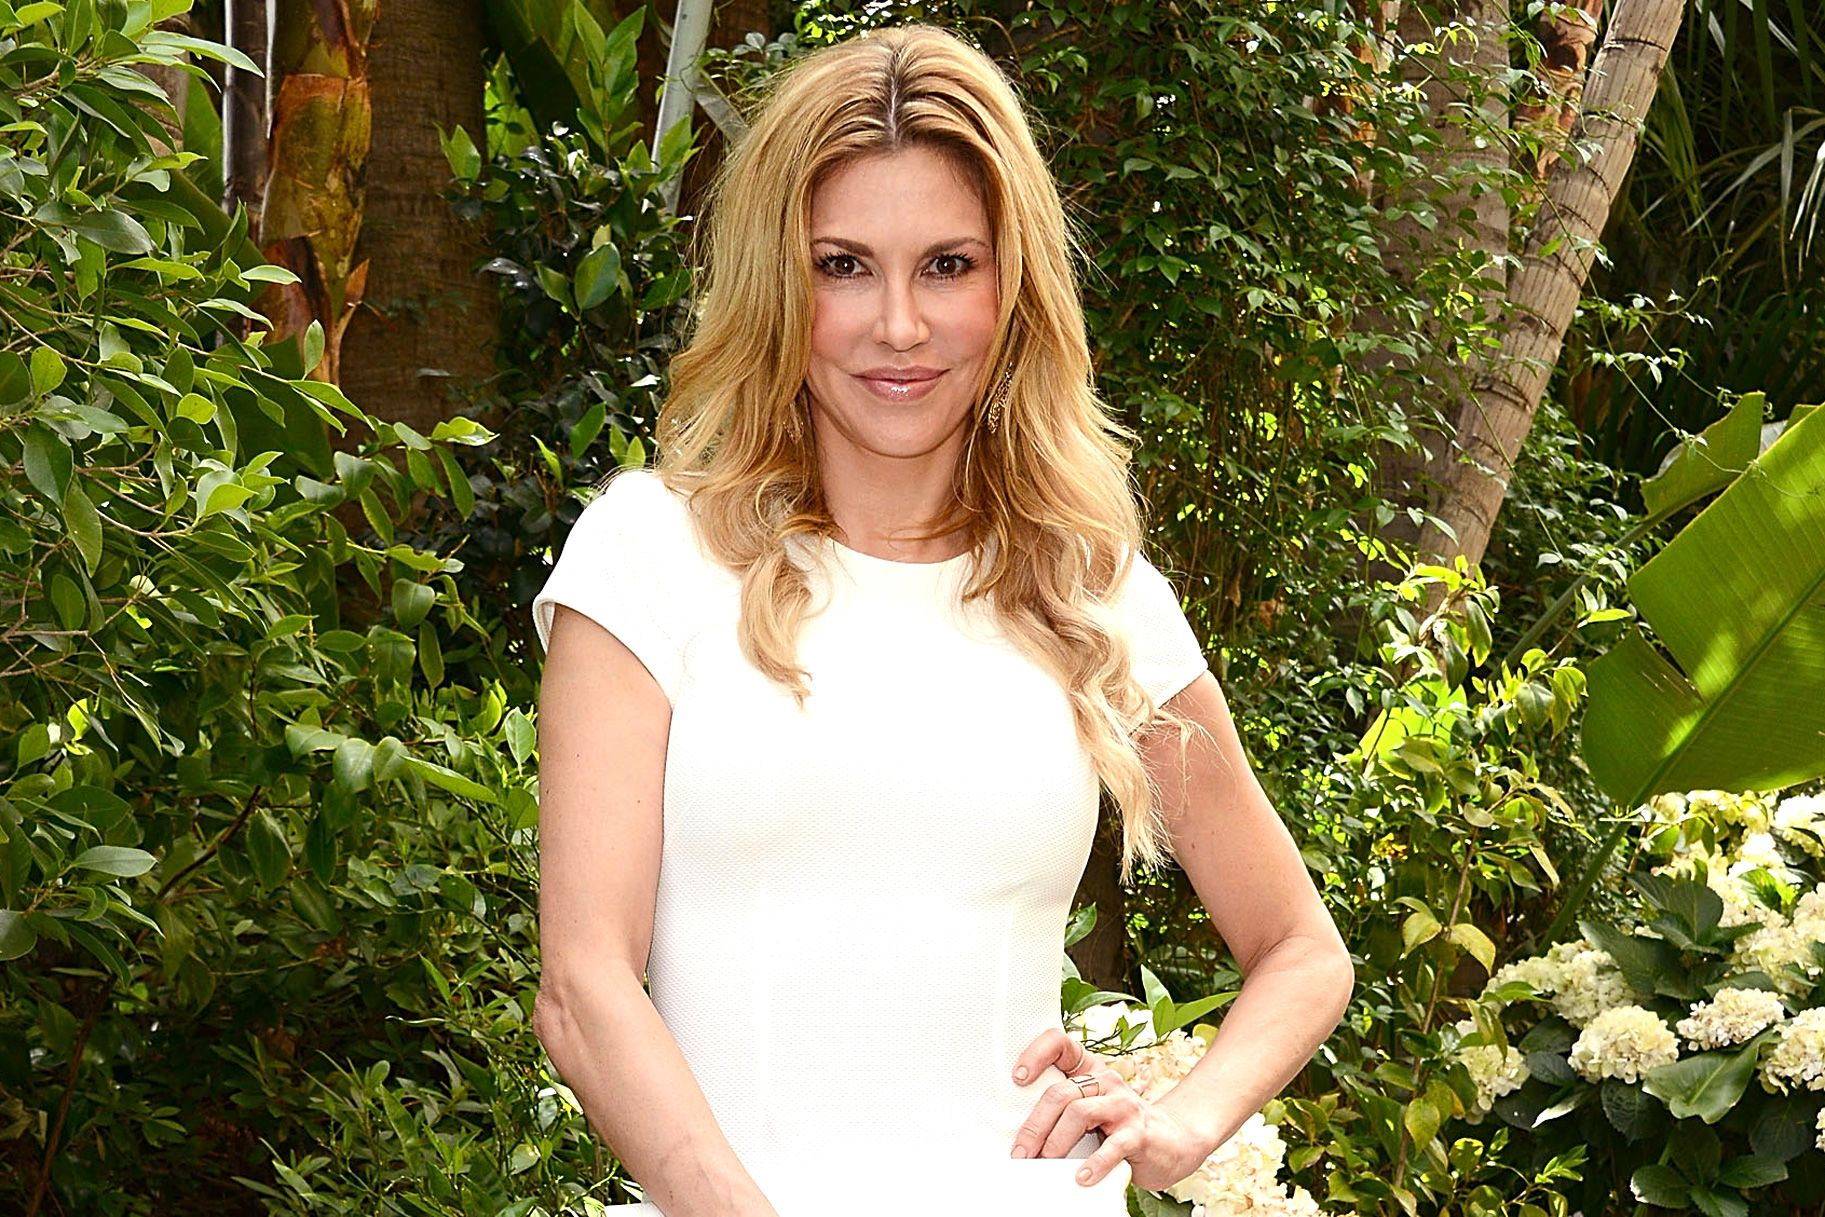 """Cheers! After teasing details last year about her latest venture into vino, Brandi Glanville has now unveiled the name of her highly-anticipated line of wines. """"It's called Unfiltered Blonde,"""" she tells the Daily Dish. """"It's a Sonoma County Chardonnay. It's been over a year in the making to perfect the taste!"""""""